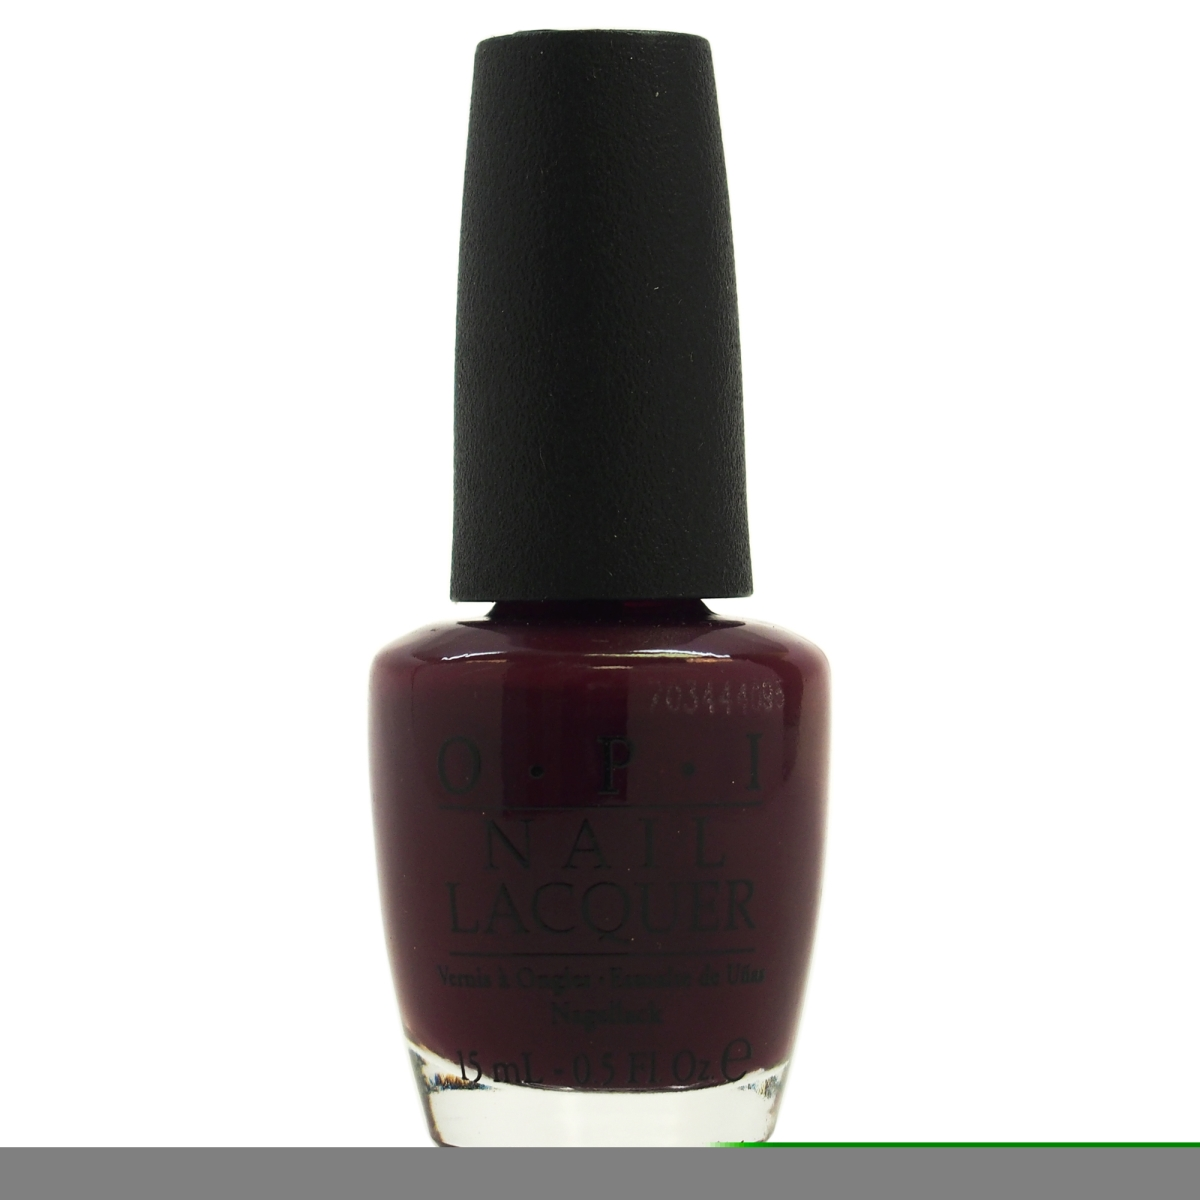 OPI W-C-4550 Nail Lacquer - No. NL F62 in The Cable Car-Pool Lane Nail Polish for Women - 0.5 oz